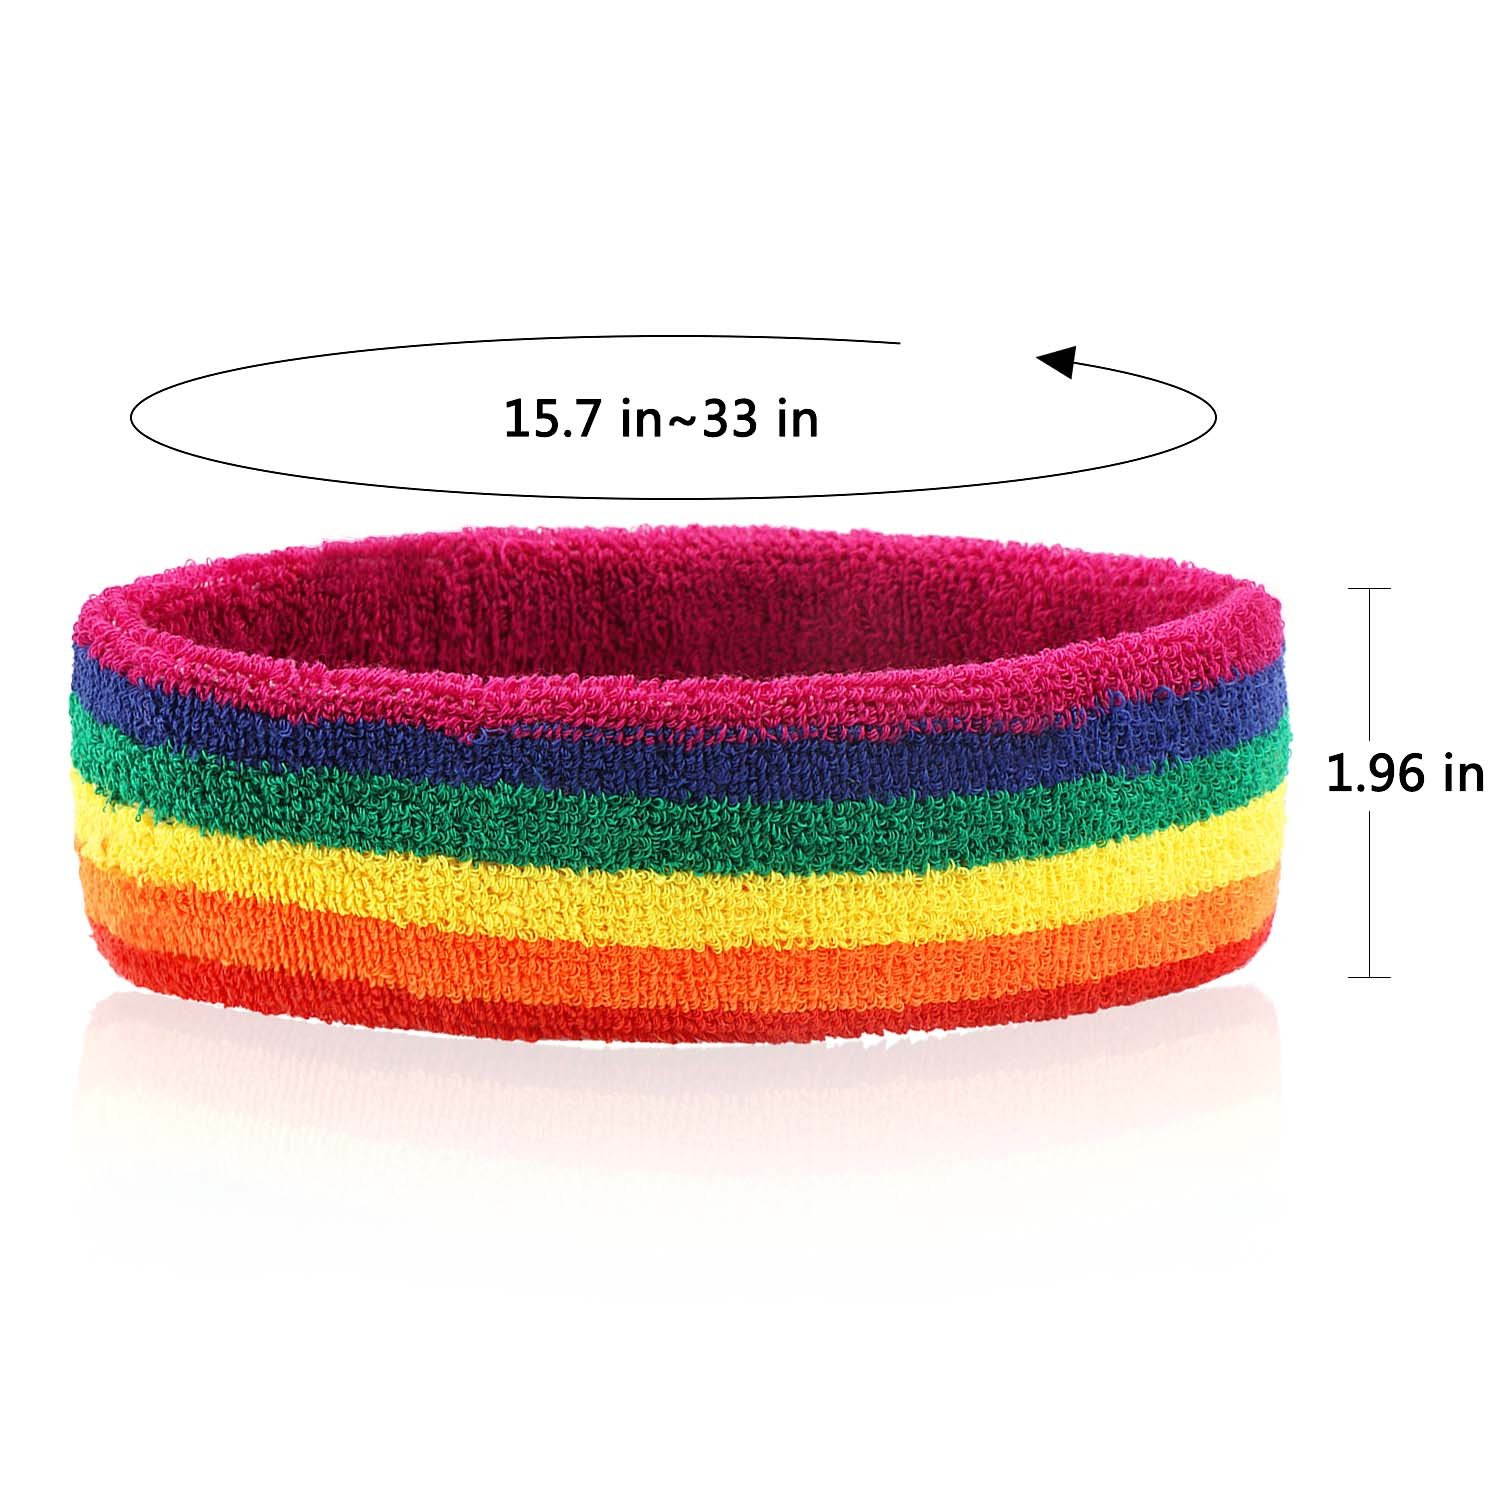 Taihao Story 6Pcs Gay Pride LGBT Pride Sweatband Sport Color Run Athletic Cotton Terry Cloth Hair Band by Taihao Story (Image #4)